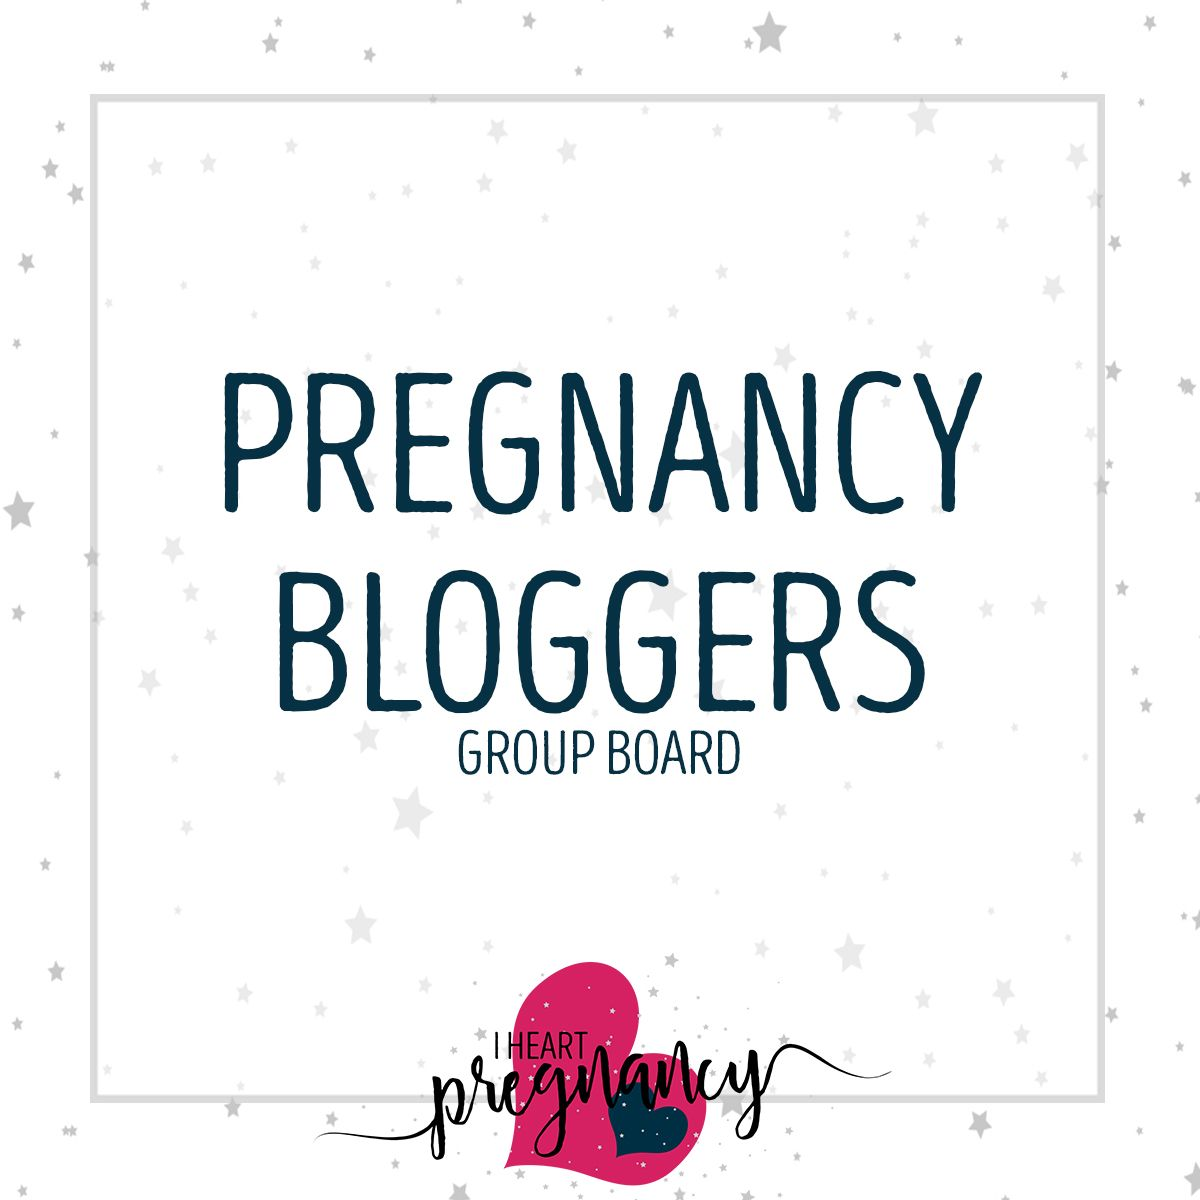 Pregnancy Bloggers Group Board - To be a part of this board, email us at iheartpregnancy@ Gmail dot com AFTER you follow our profile.